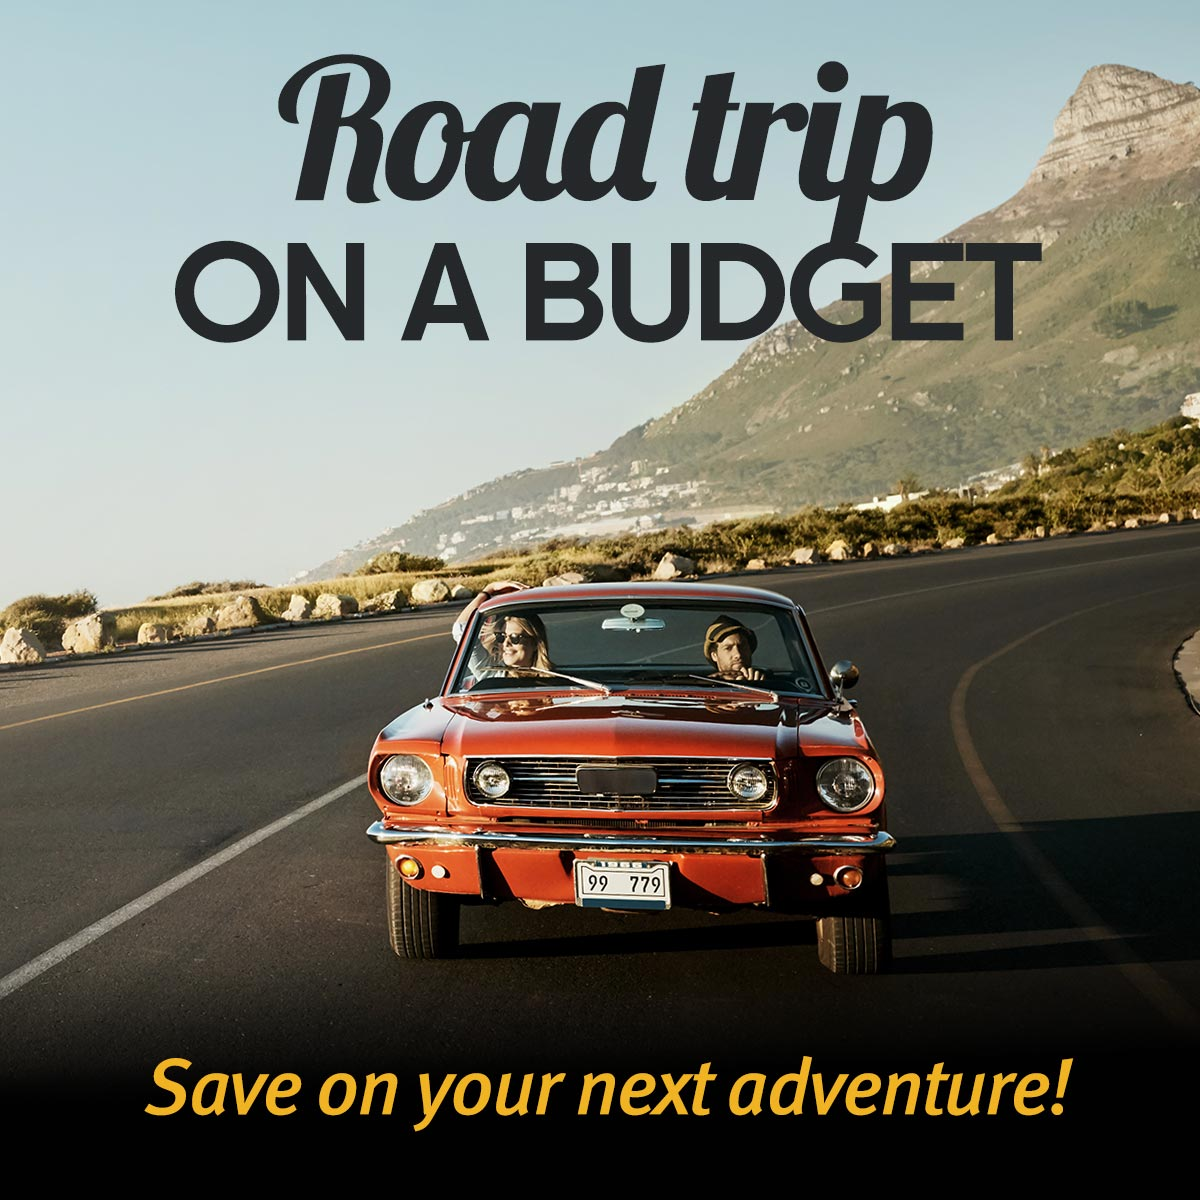 Road Trip on a Budget